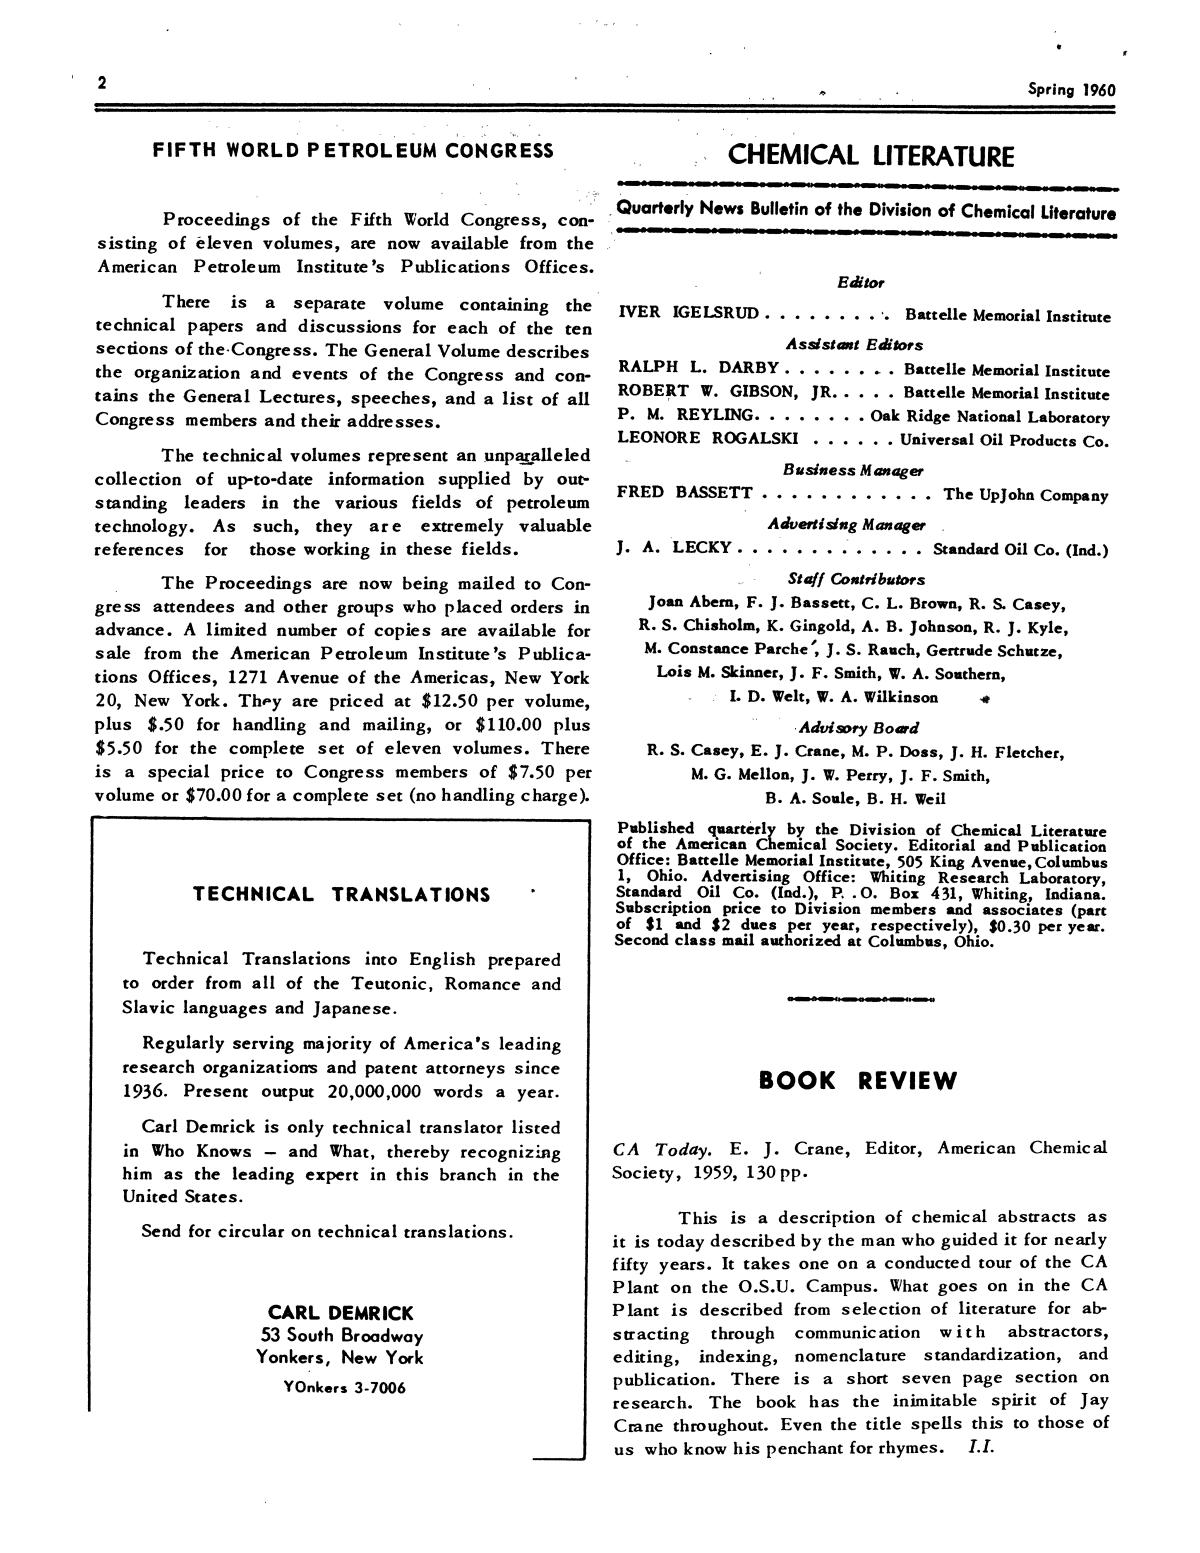 Chemical Literature, Volume 12, Number 1, Spring 1960                                                                                                      2